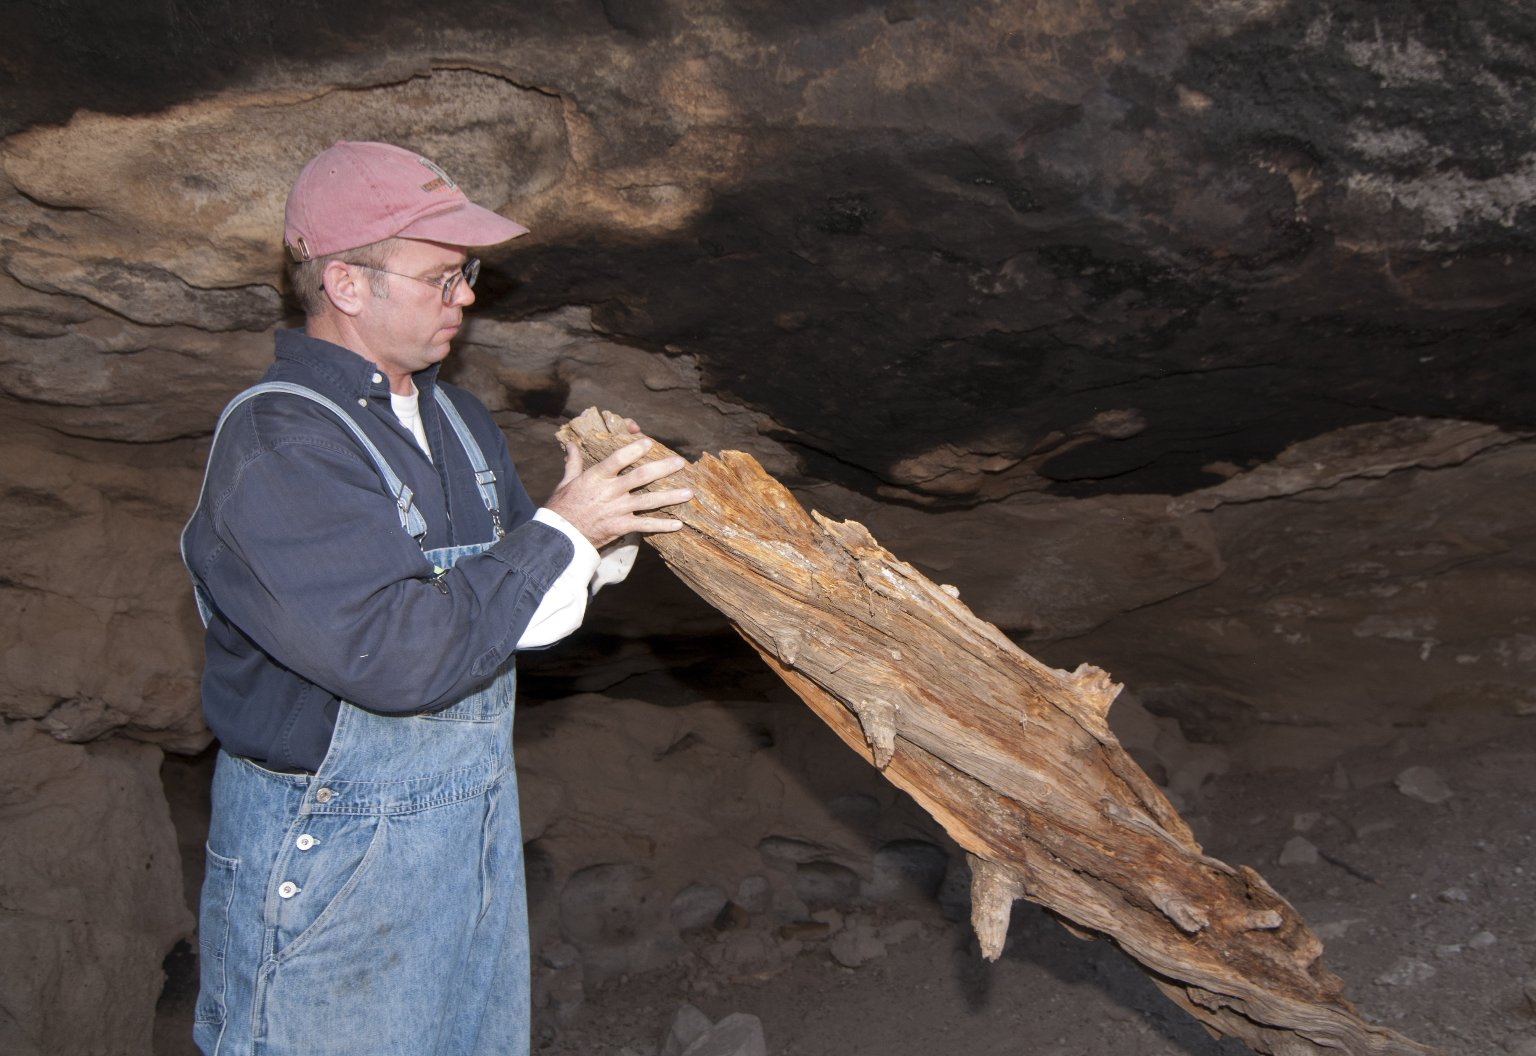 Dr. Steve Nash examines a timber at the Hinkle Park Cliff Dwelling.